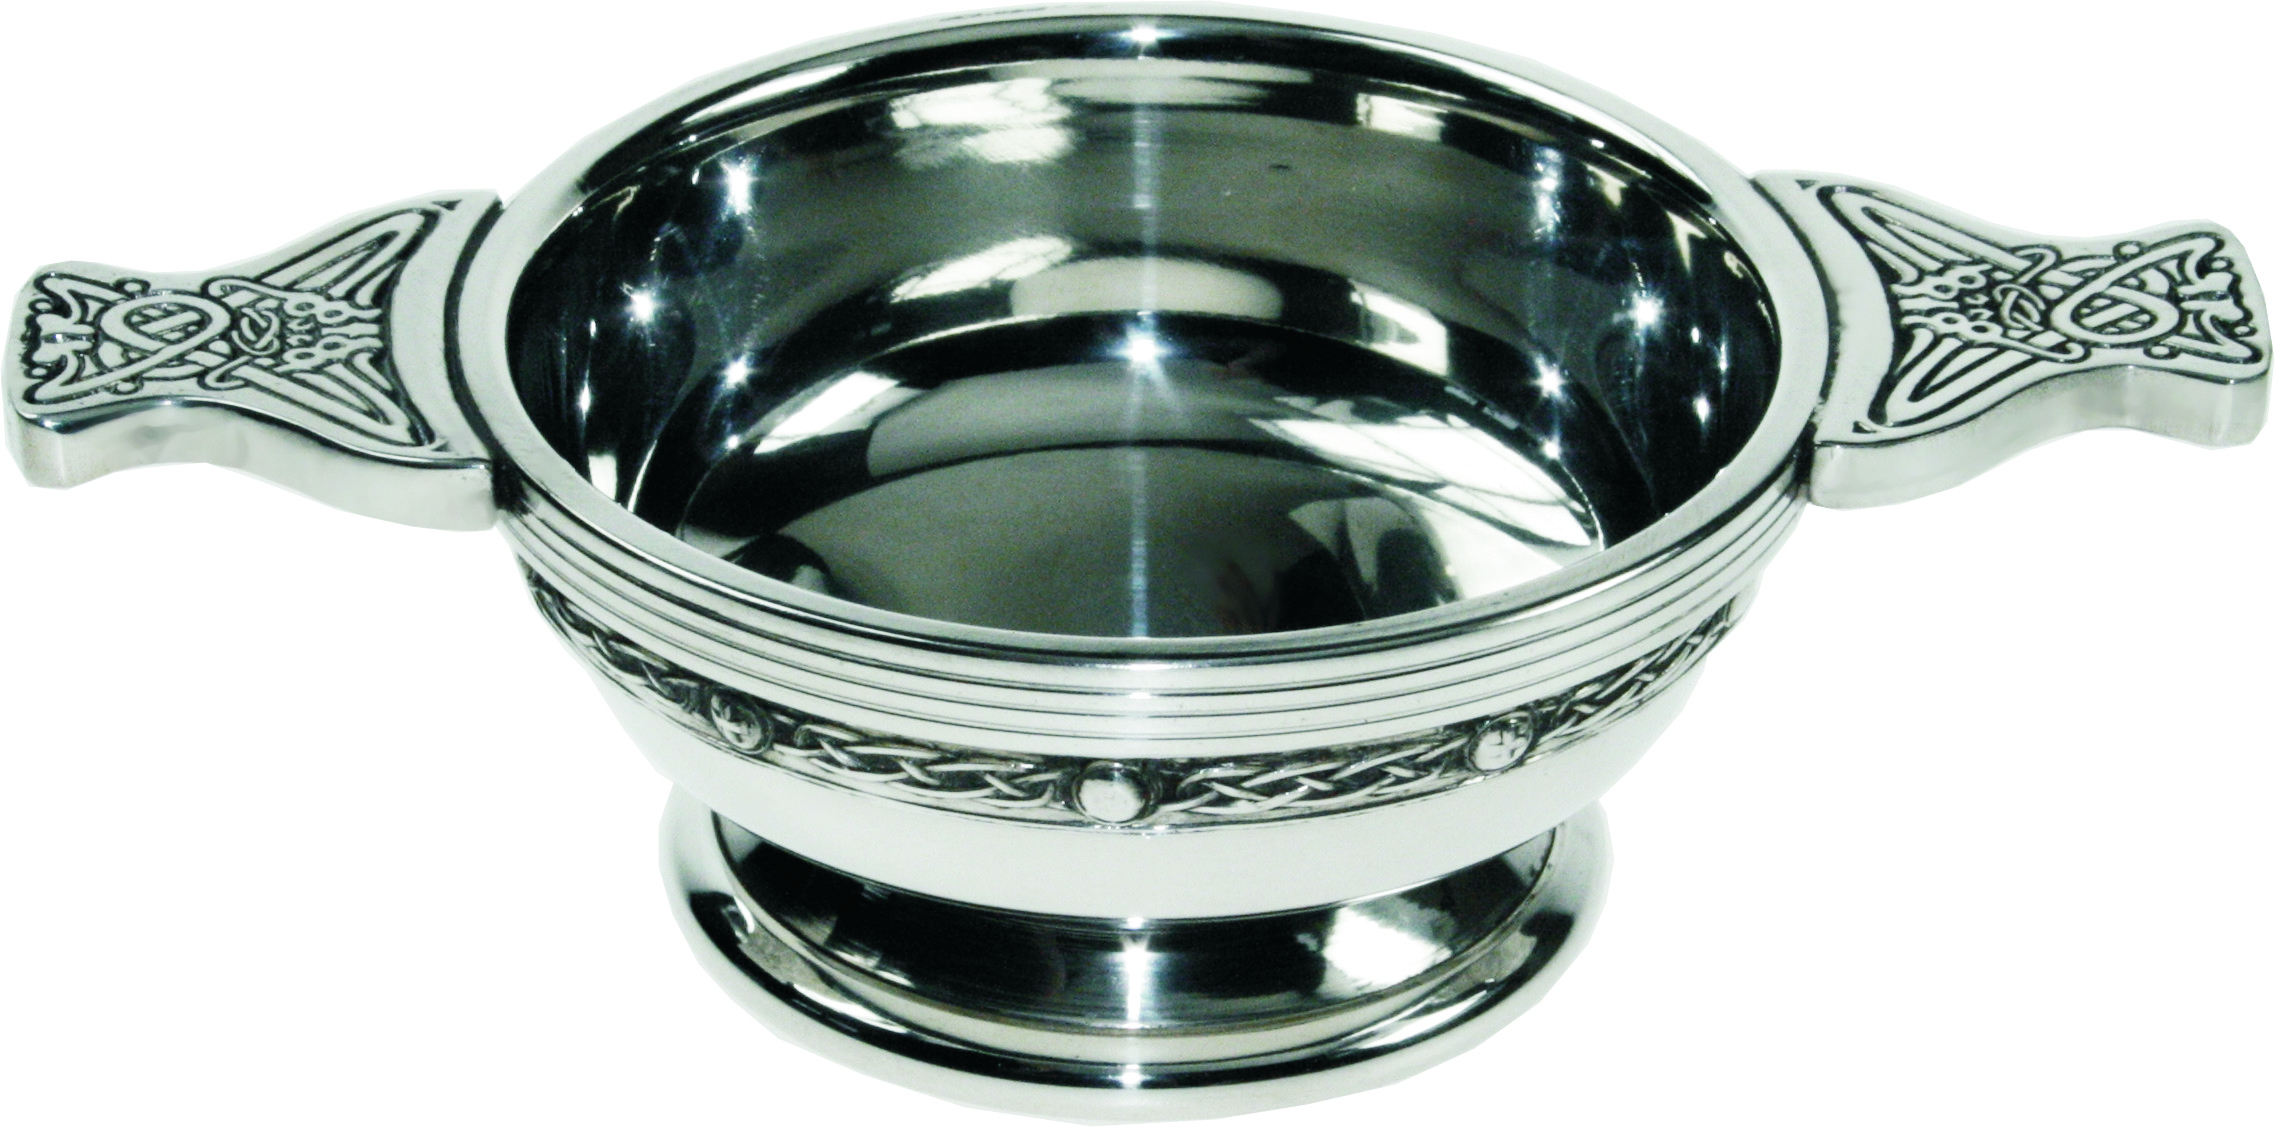 "Pewter Quaich Bowl with Celtic Band and Patterned Handle 9cm (3.5"")"